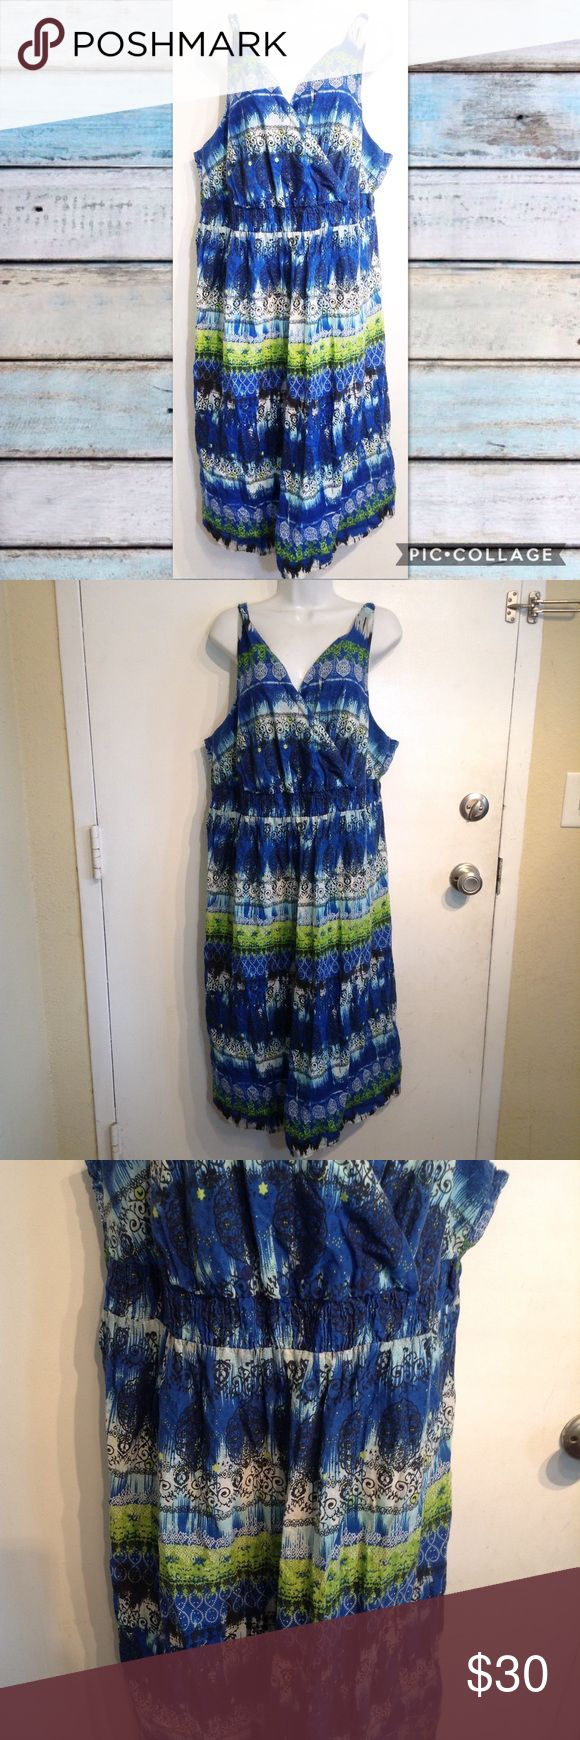 """AVENUE Plus Size Blue Boho Kaleidoscope Dress Avenue plus size blue boho kaleidoscope print dress. Faux wrap style v neck. Shirred elastic back. Flowy bottom. Can be dressed up or down. Size 22/24. Measures 22.5"""" flat from armpit to armpit and 48"""" long. No modeling. Smoke free home. I do discount bundles. Avenue Dresses"""